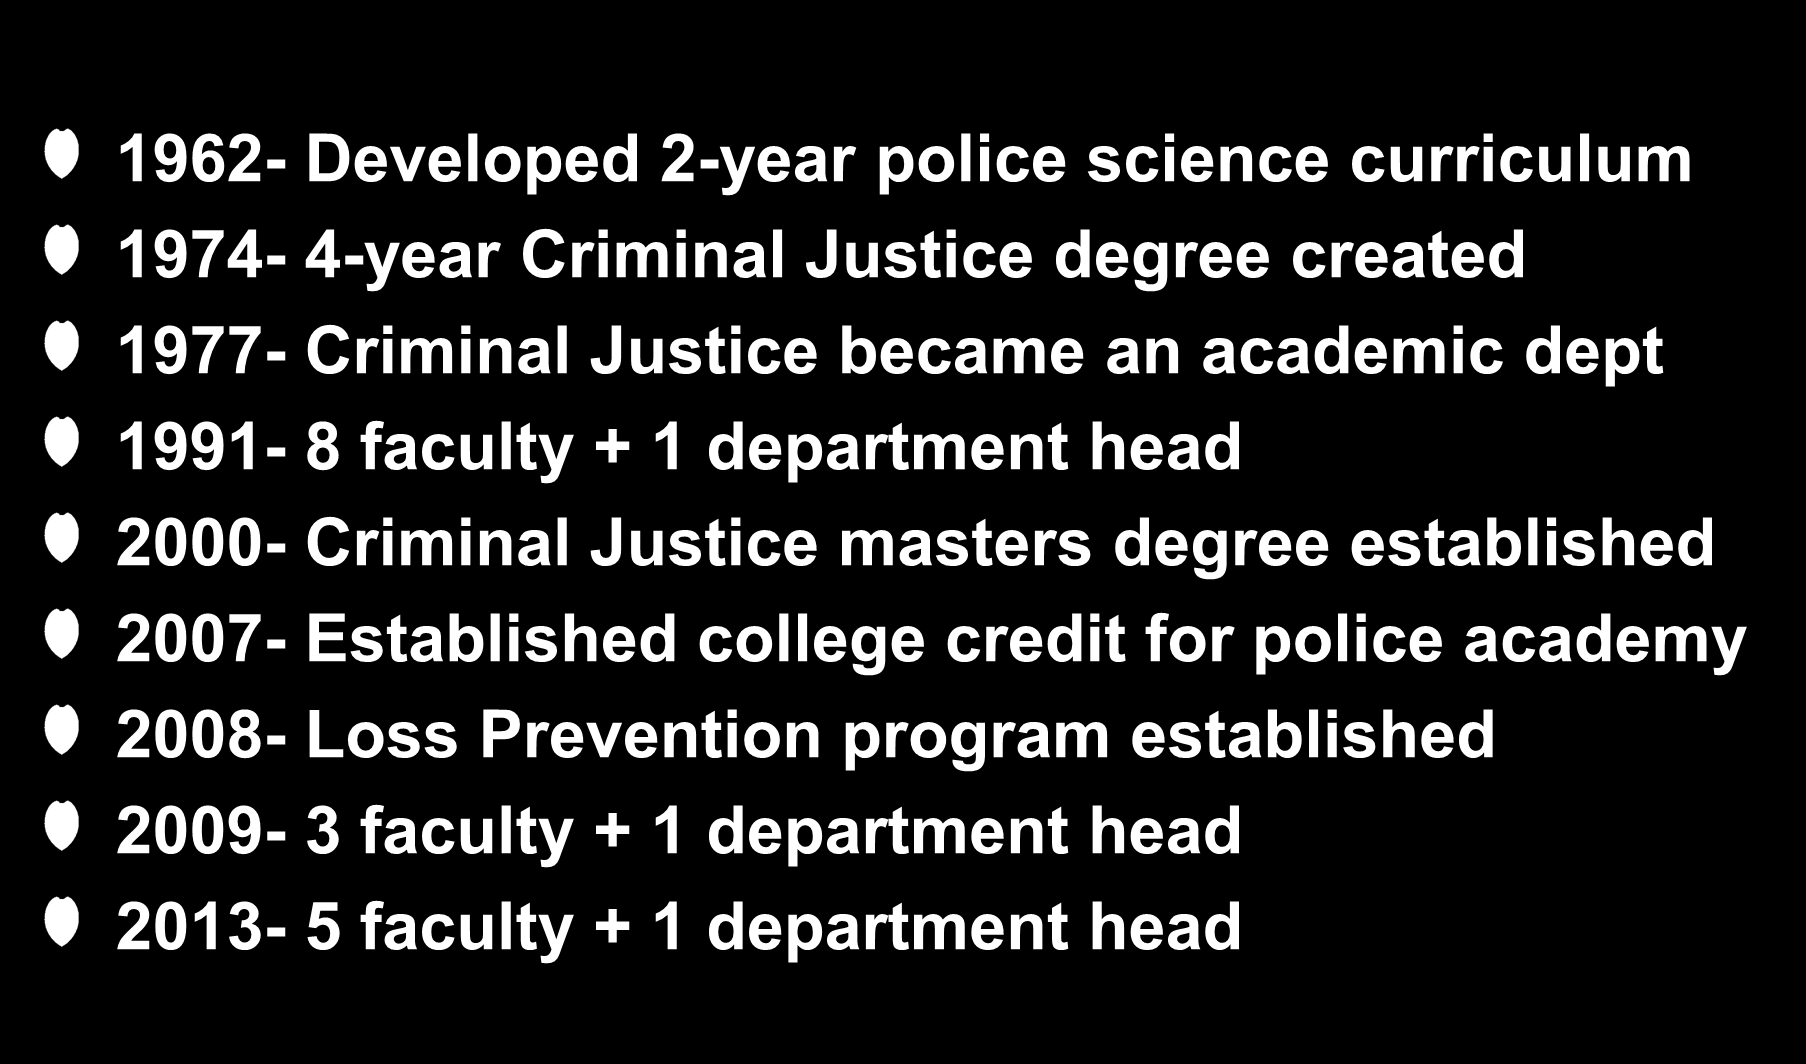 Criteria #2: History, Development and Expectations 1962- Developed 2-year police science curriculum 1974-4-year Criminal Justice degree created 1977- Criminal Justice became an academic dept 1991-8